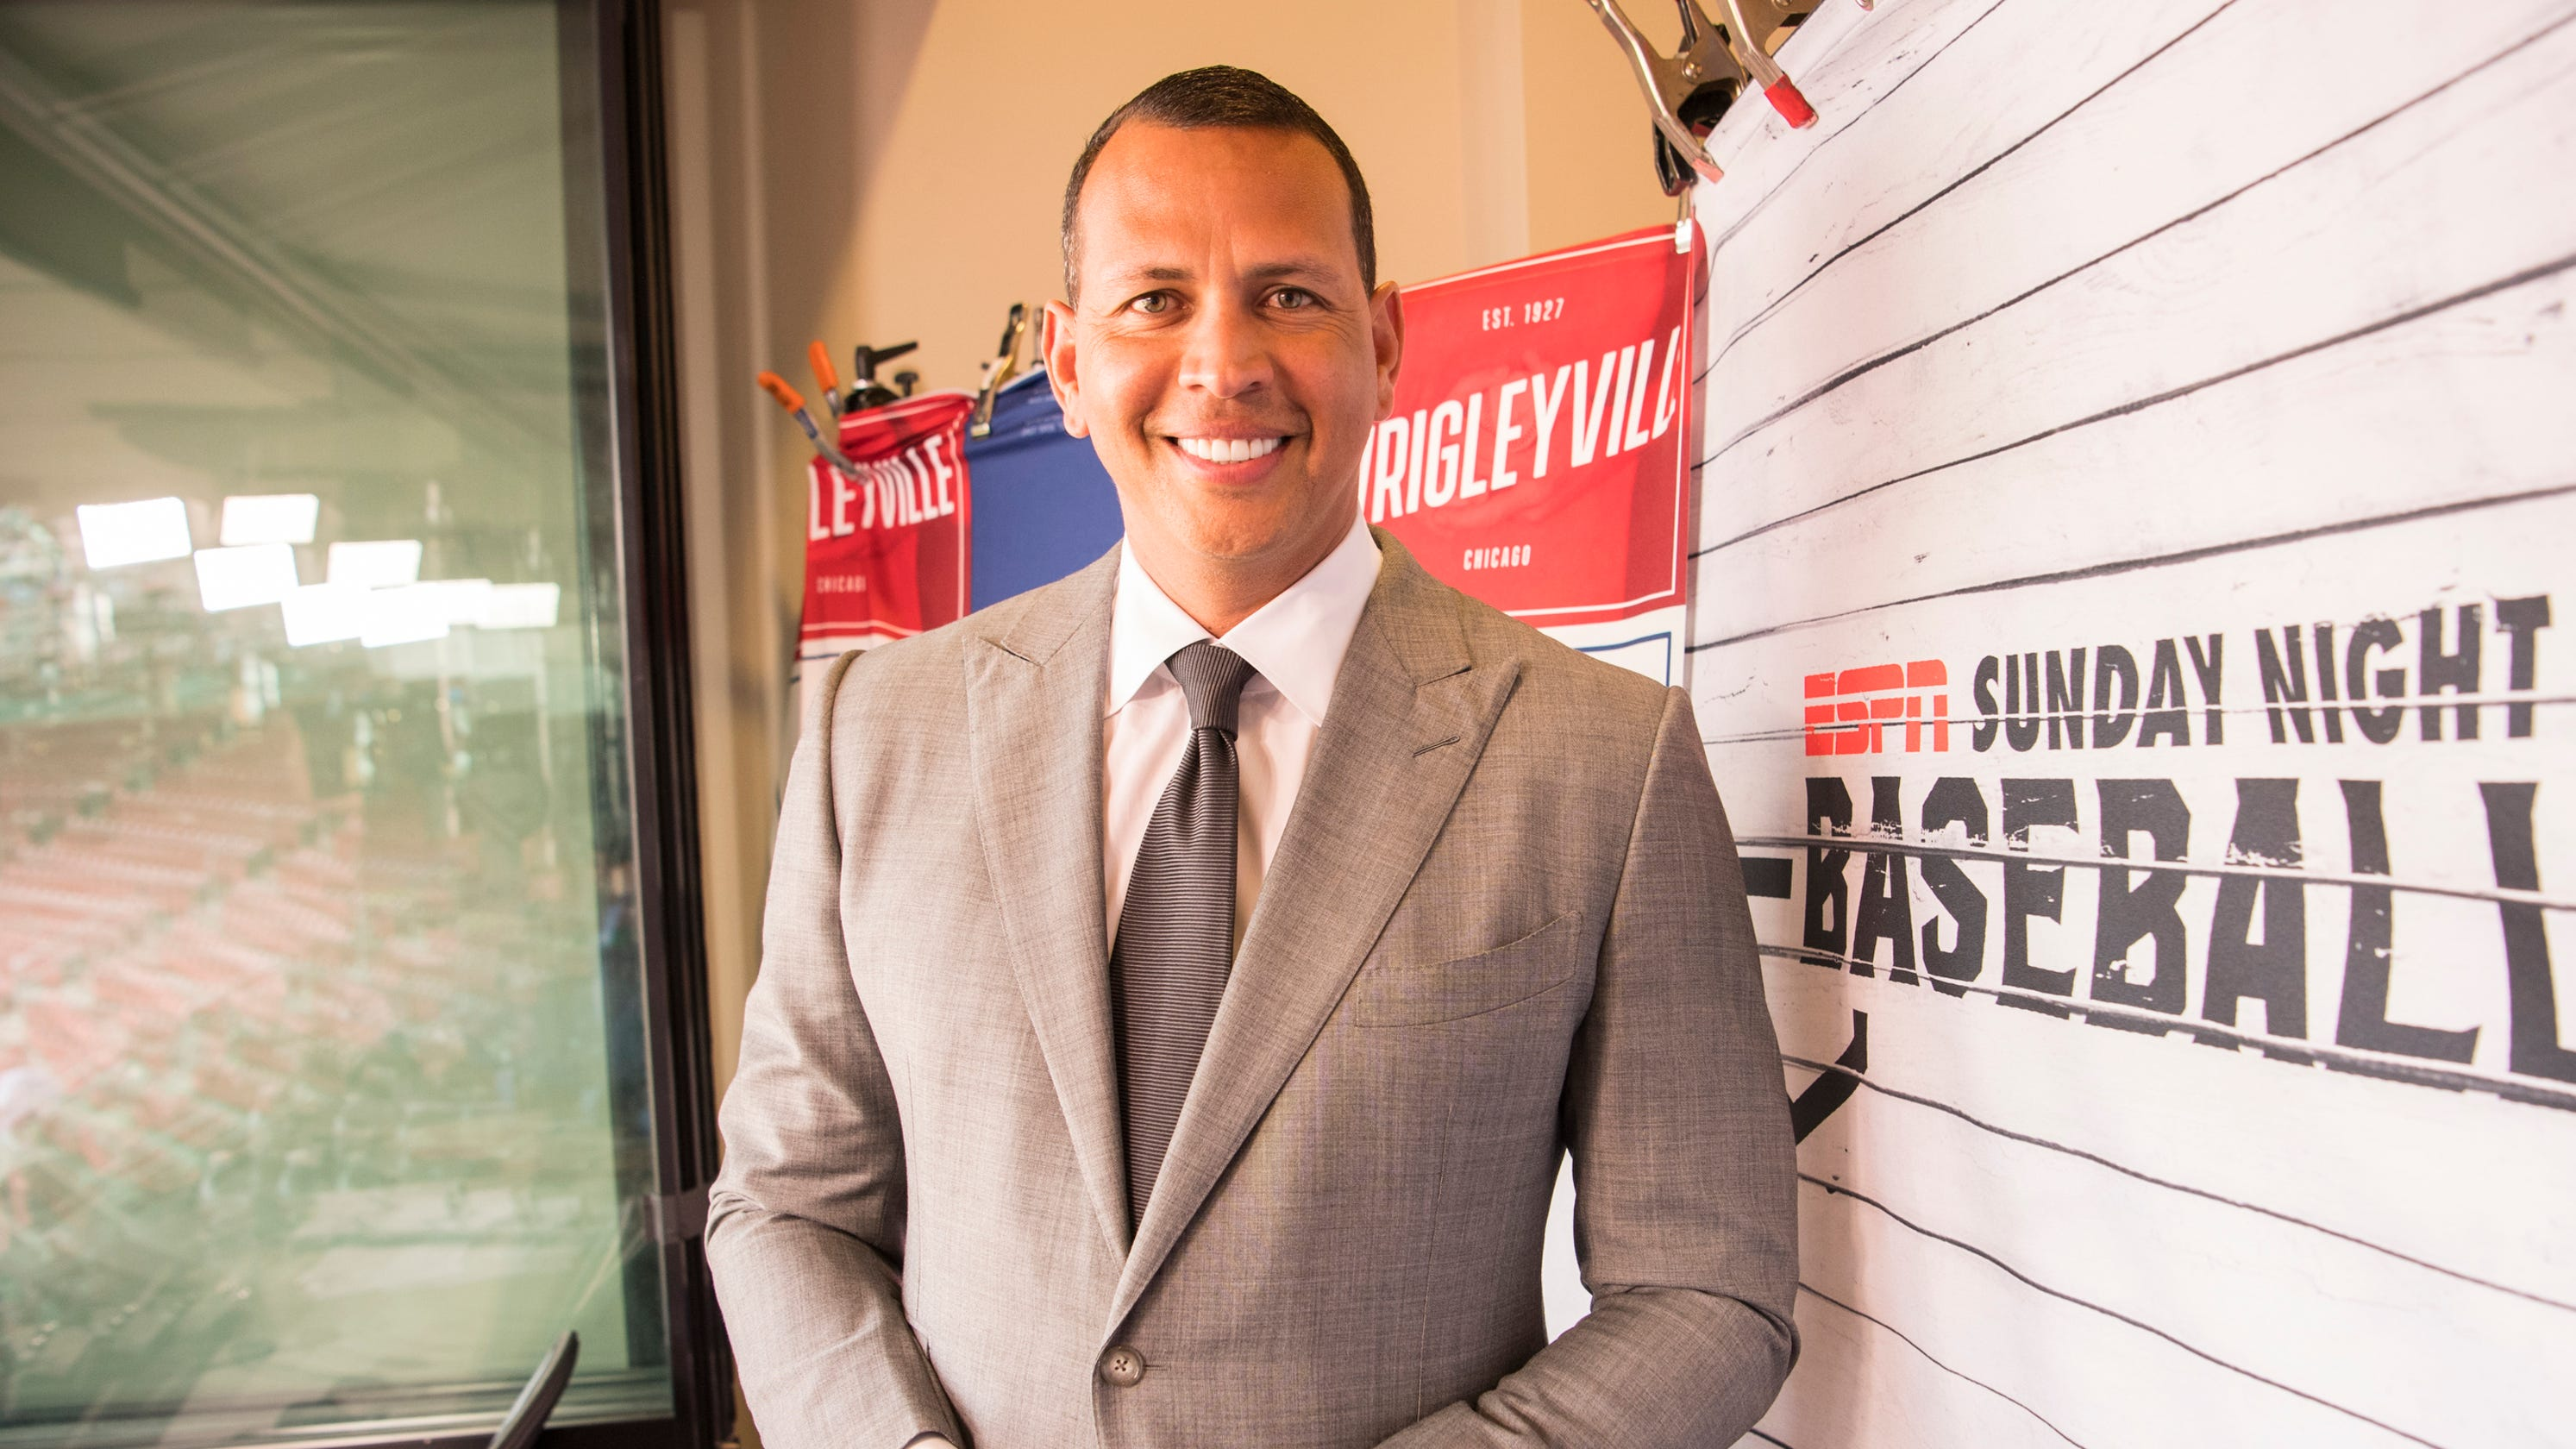 Alex Rodriguez has $500,000 worth of items stolen from rental car, per report